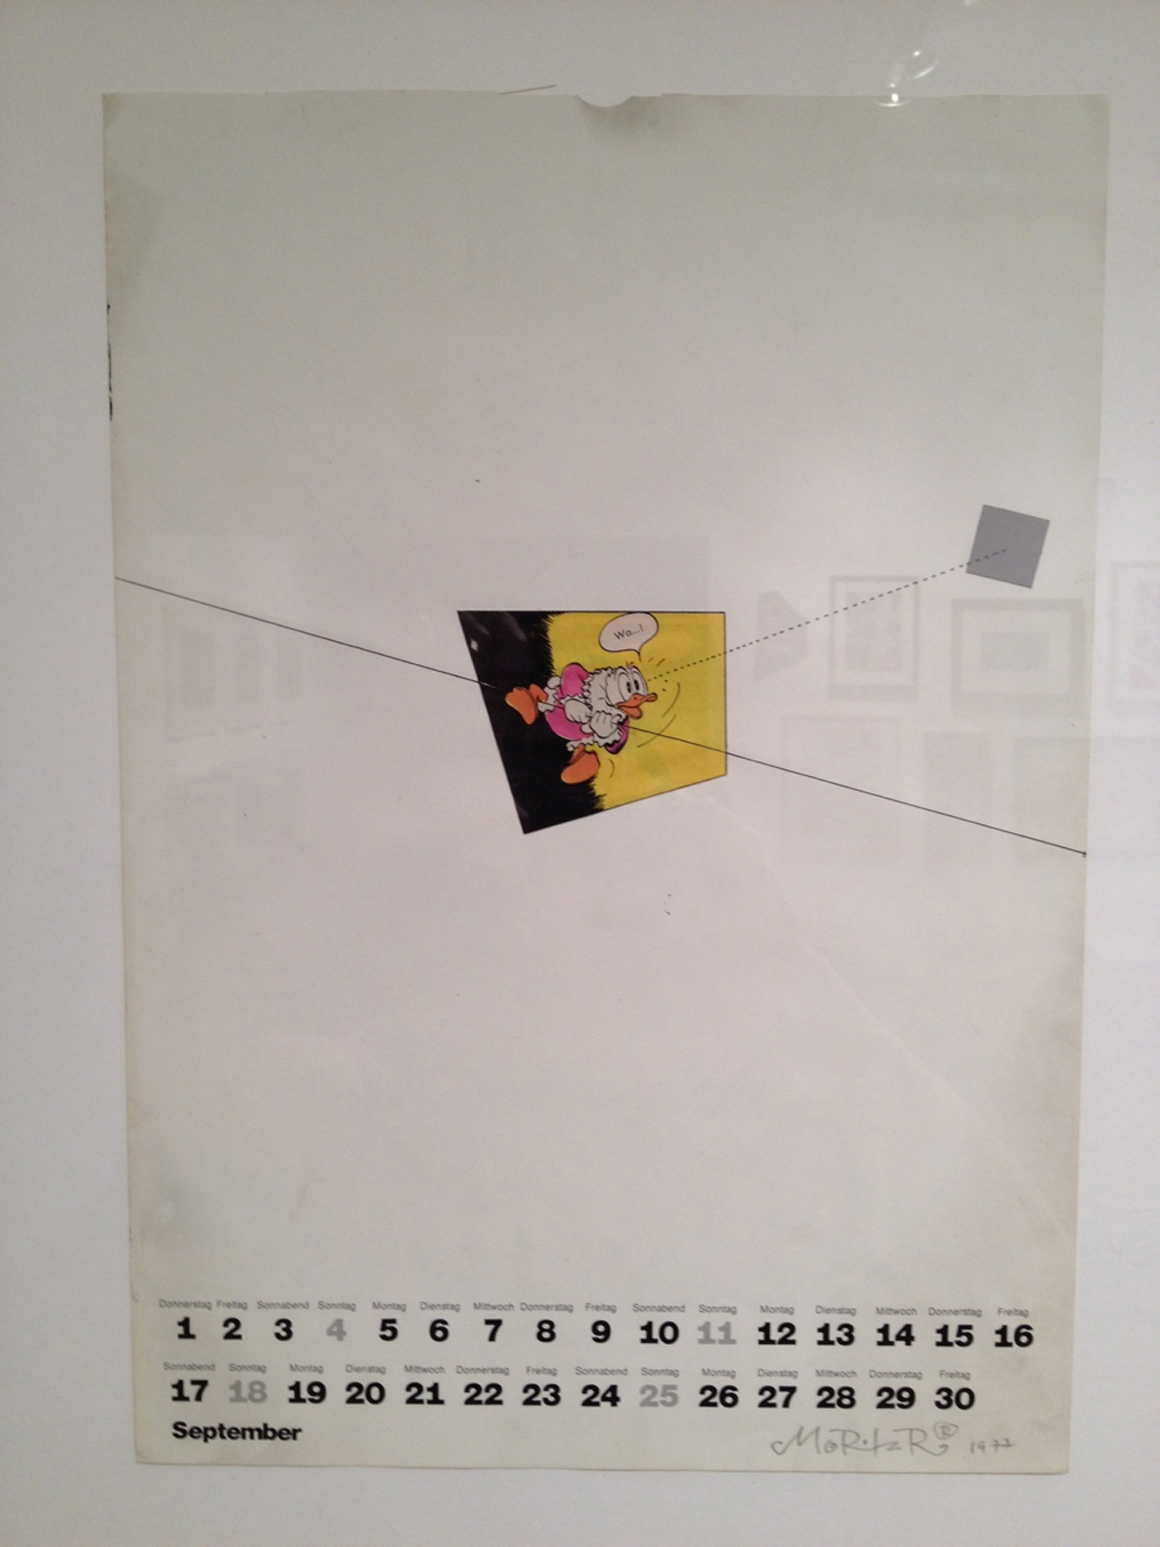 <p><em>Calendar 1977 September</em><span class='media'>collage</span>16 x 11.25 in  (40.6 x 28.6 cm)<br>20.75 x 16.75 in  (52.7 x 42.5 cm) Framed (framed)<br>1977<br><a class='inquire' href='mailto:info@gildargallery.com?subject=Artwork Inquiry MREI0017&body=I am interested in finding out more about Calendar 1977 September by Moritz Reichelt'>Inquire</a></p>